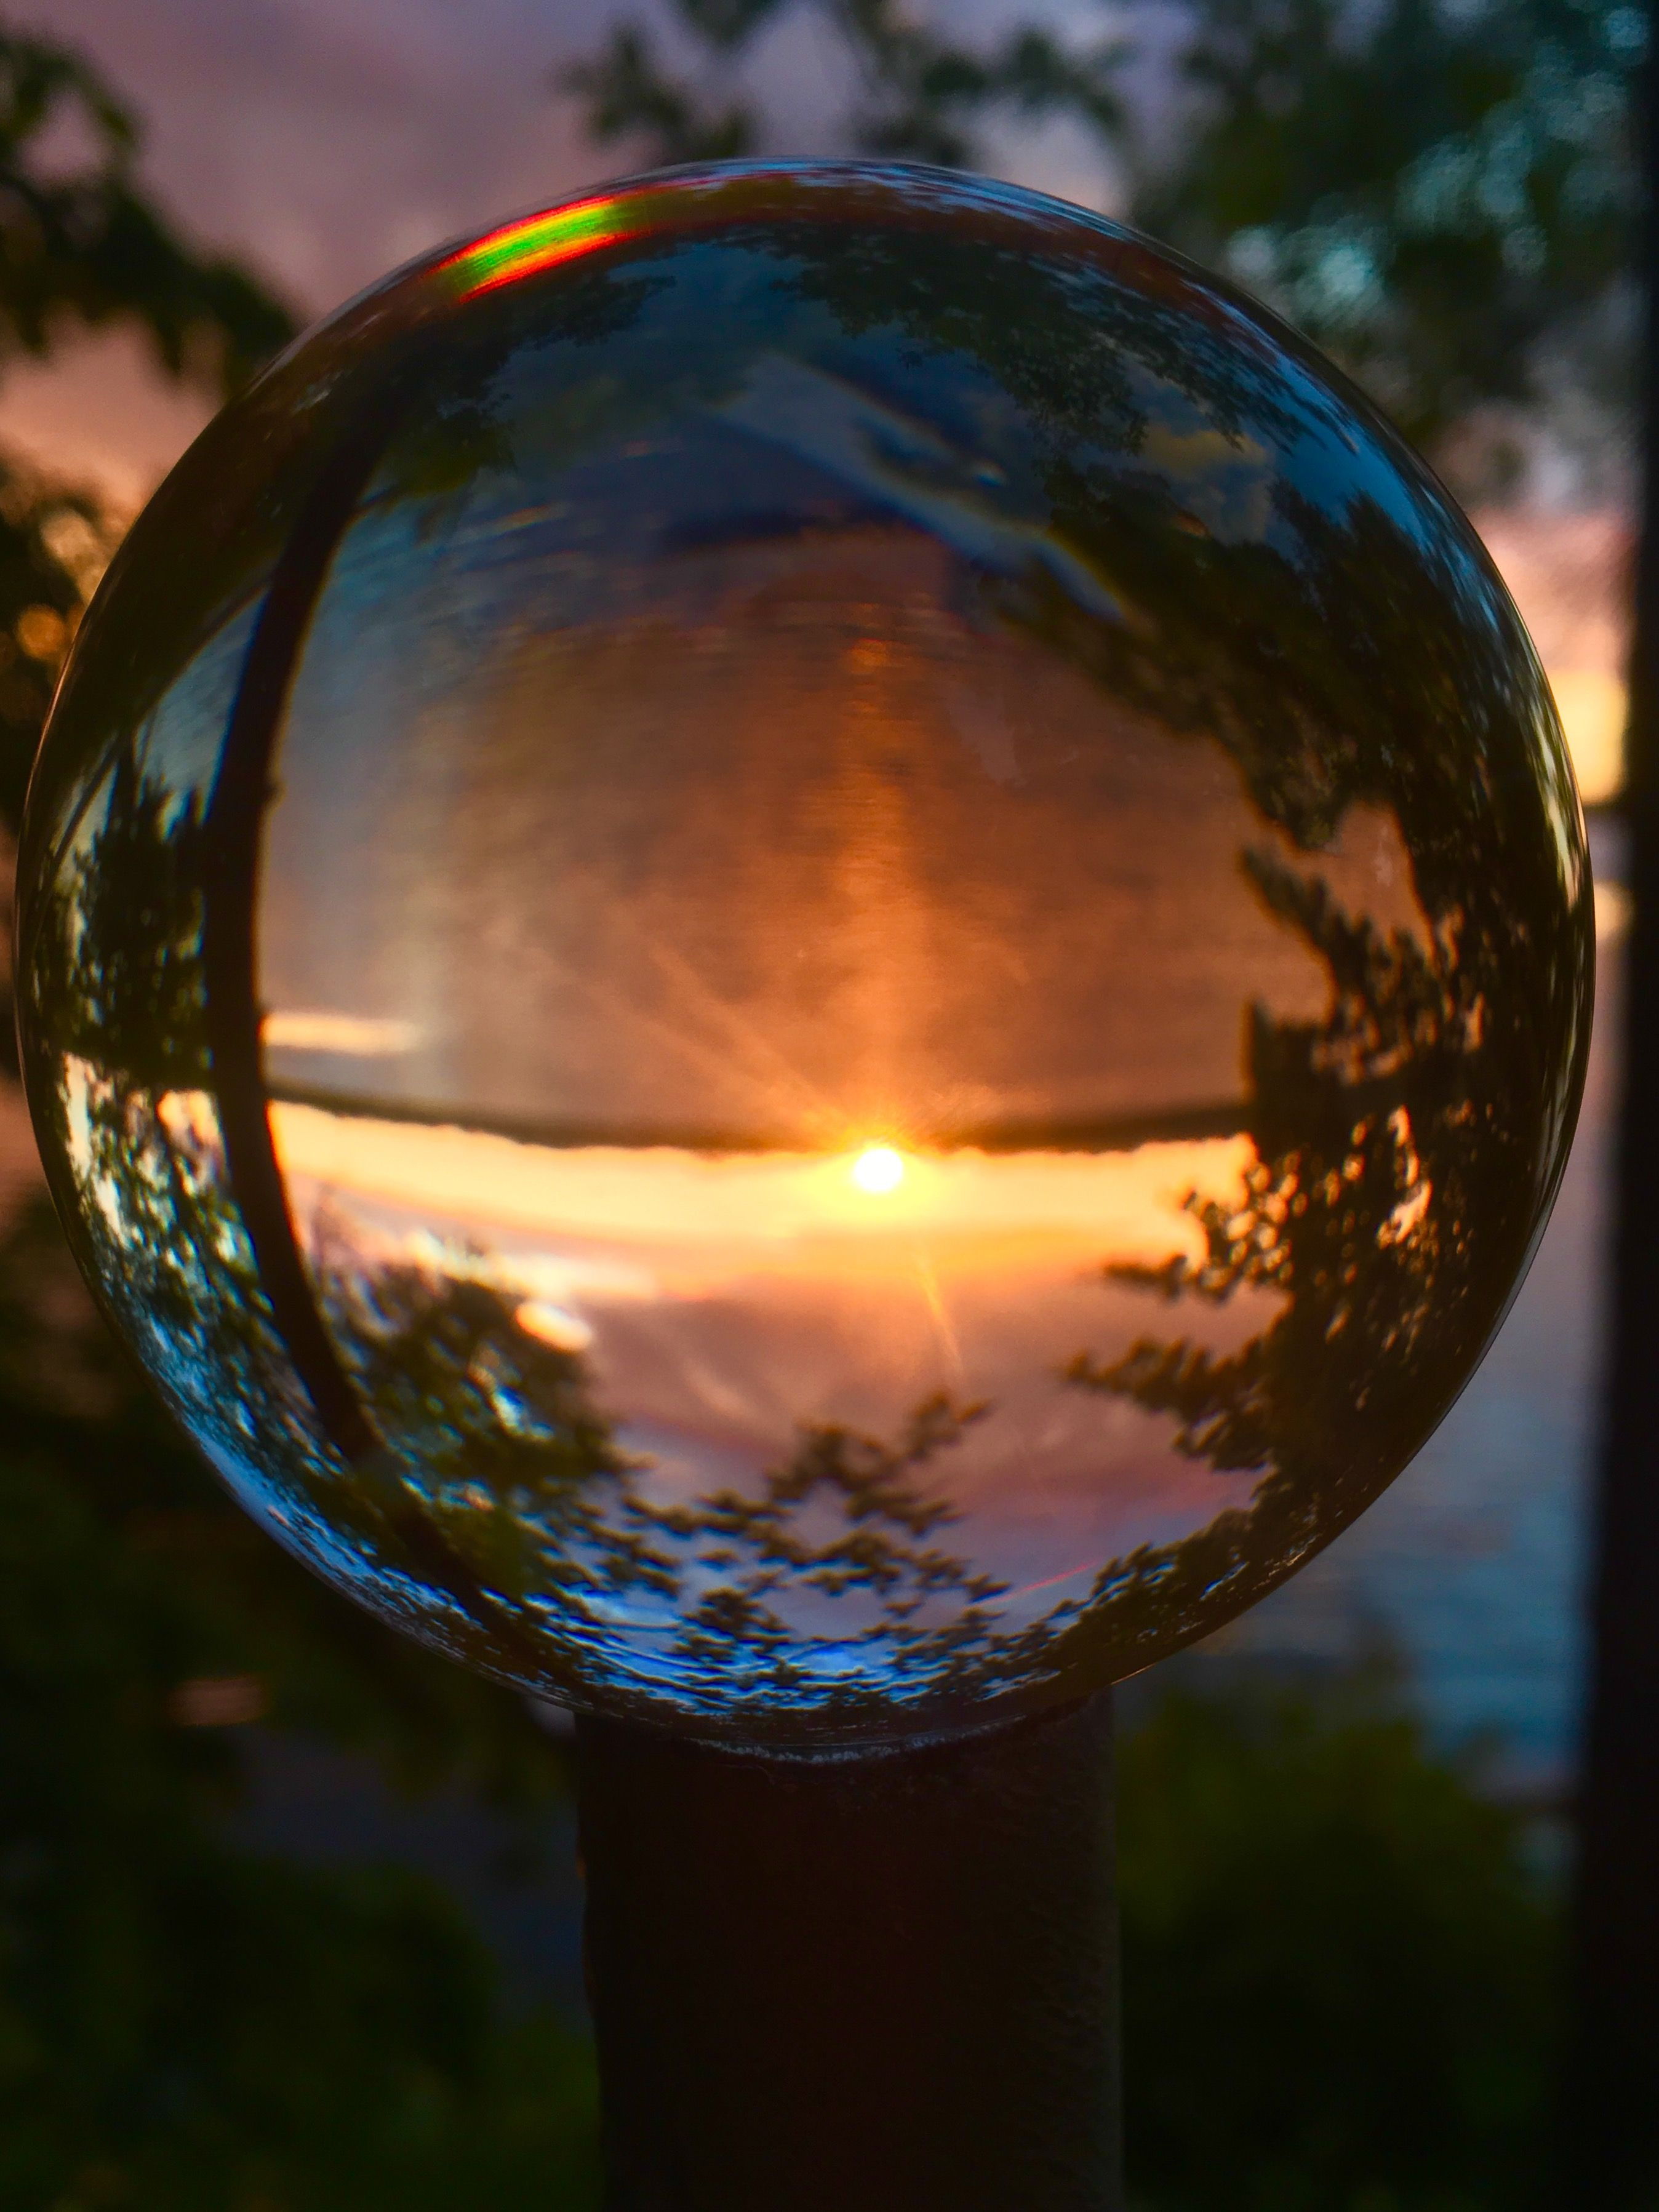 Through The Glass Through The Looking Glass Glass Ball